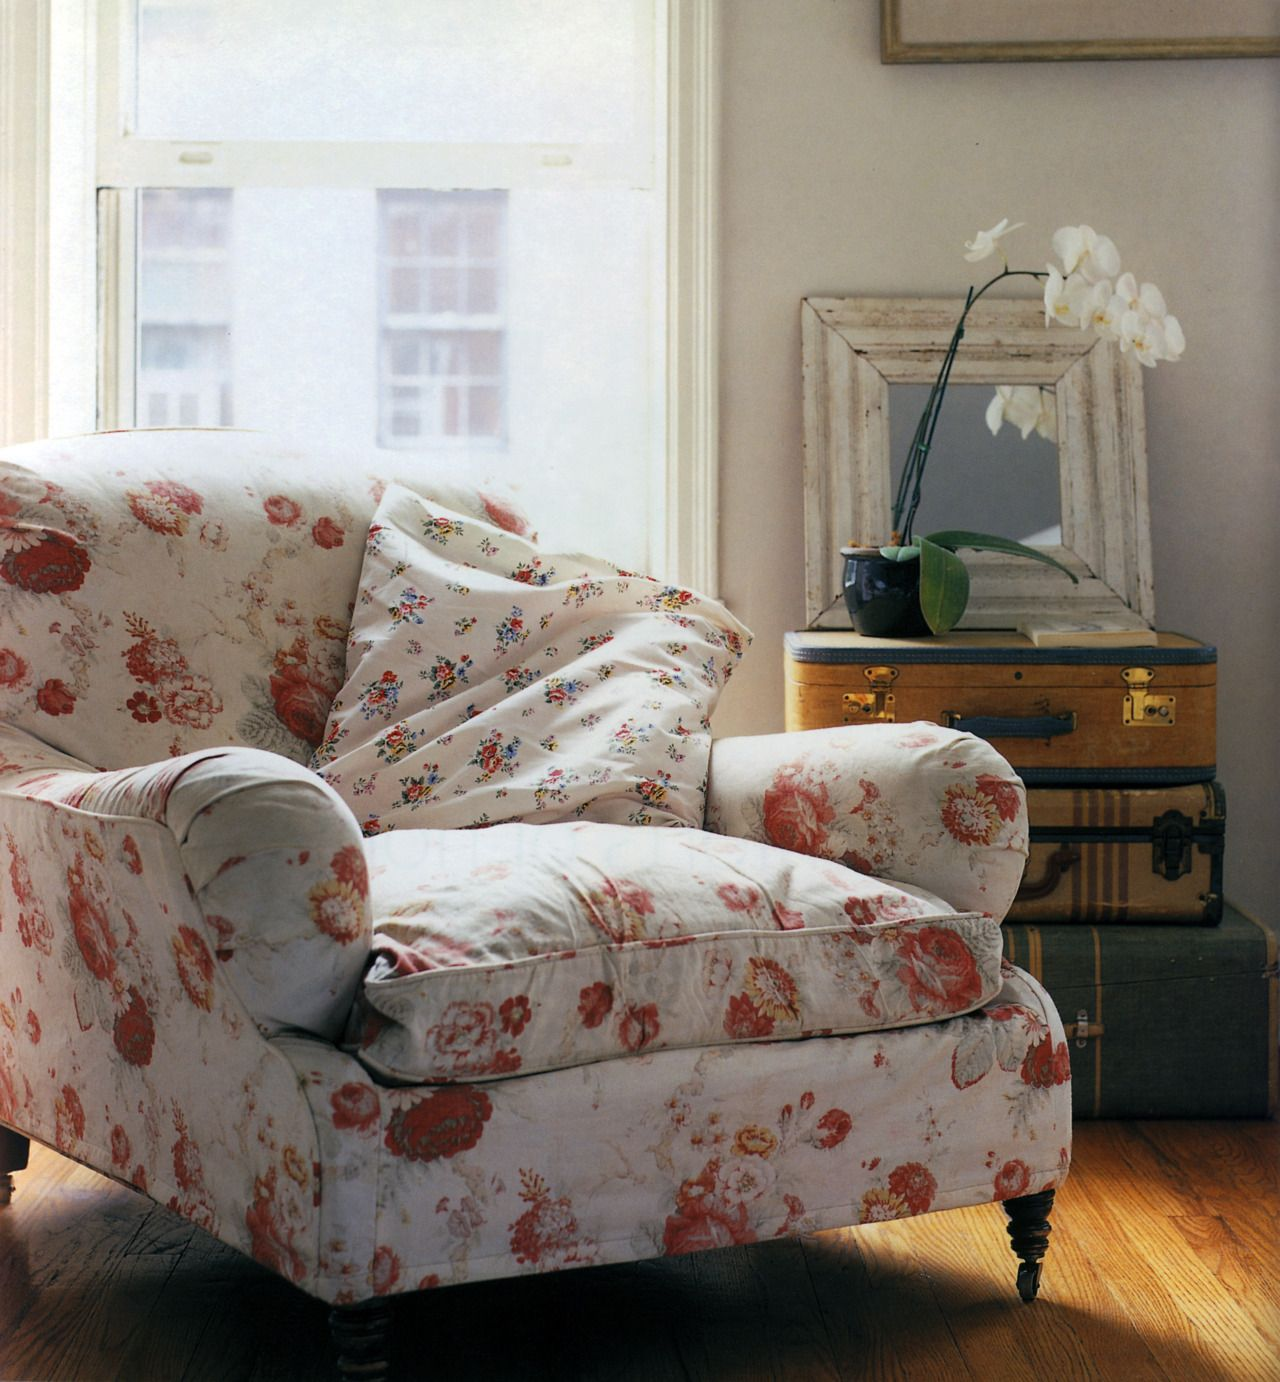 Floral And Floral Overstuffed Chairs Furniture Comfy Chairs #overstuffed #chairs #for #the #living #room